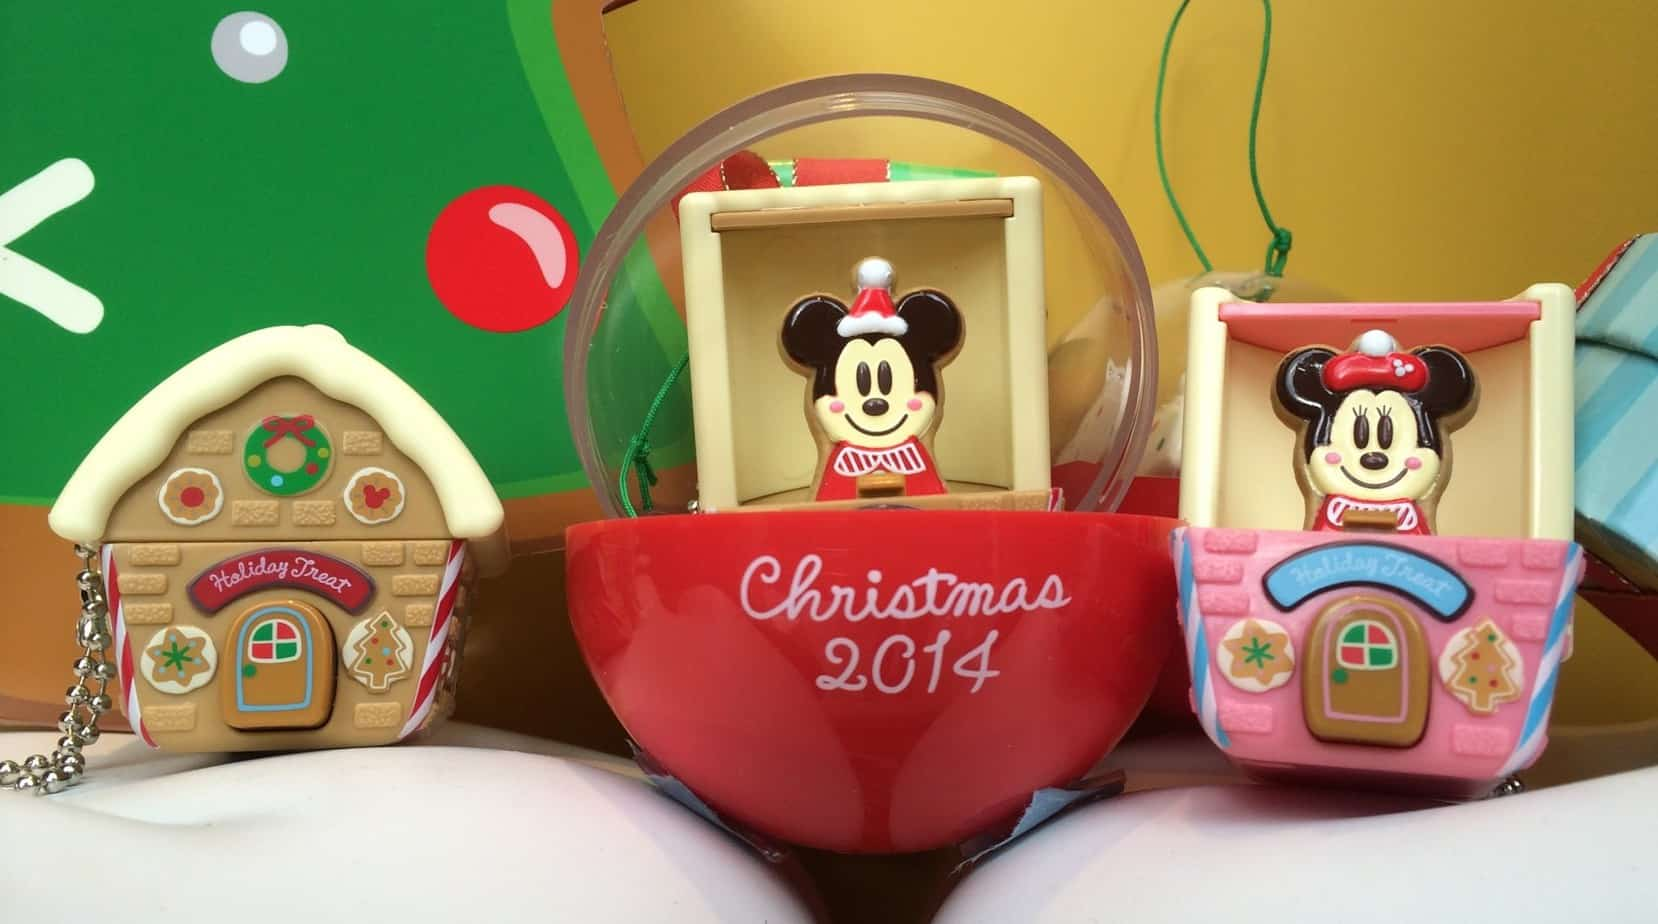 Christmas 2014 Gachapon Toys